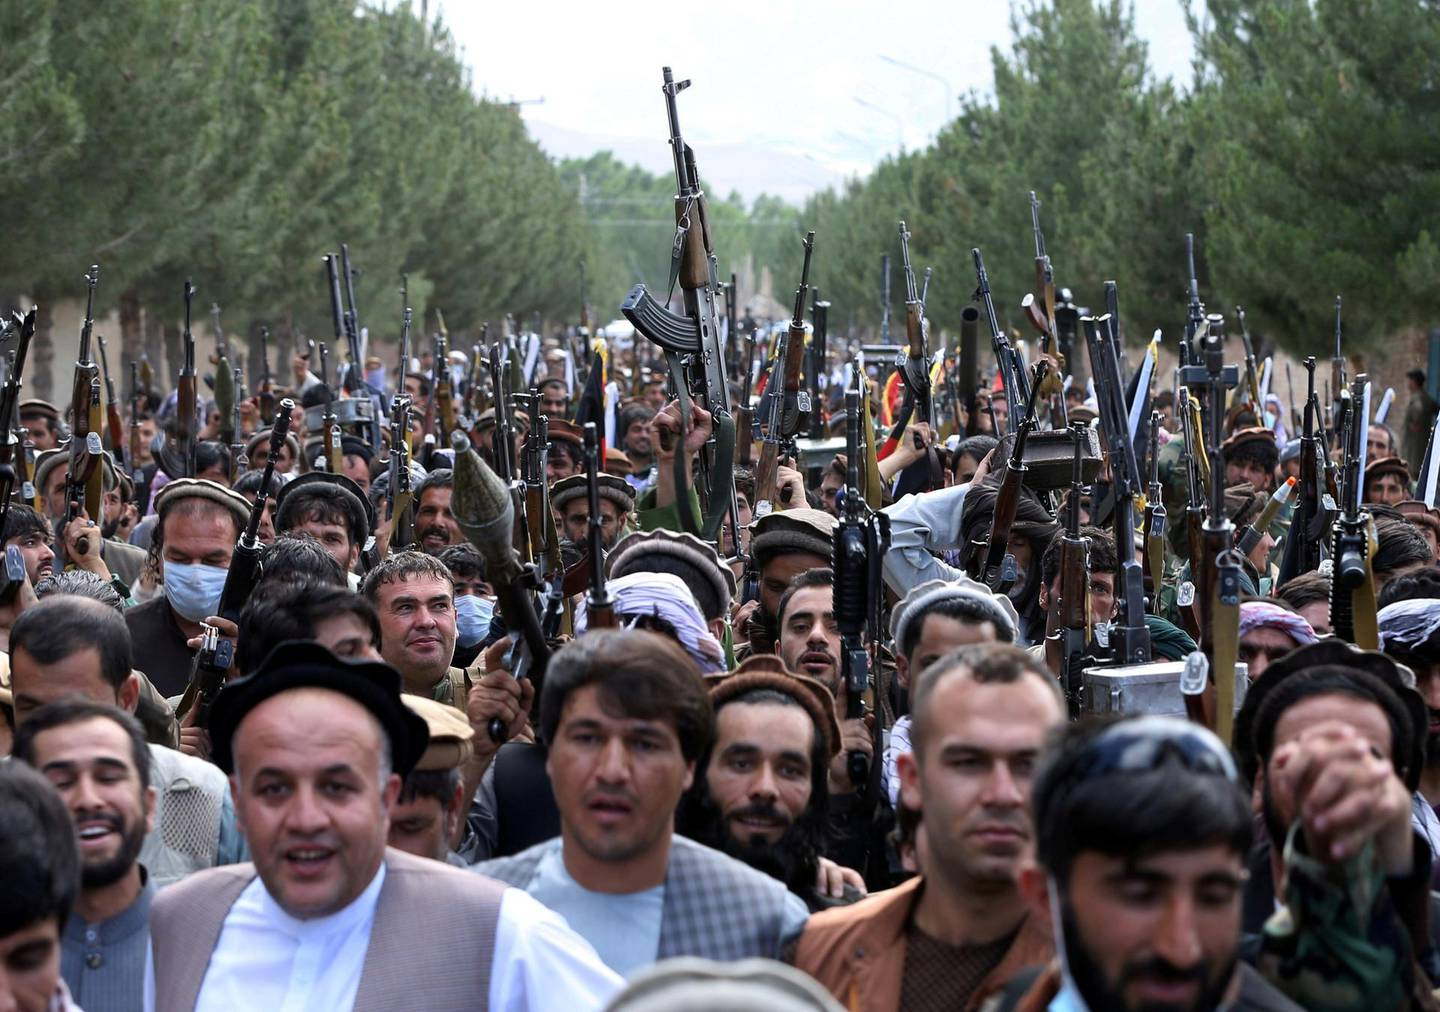 Hundreds of armed men attend a gathering to announce their support for Afghan security forces and that they are ready to fight against the Taliban, on the outskirts of Kabul, Afghanistan June 23, 2021. REUTERS/Stringer     TPX IMAGES OF THE DAY